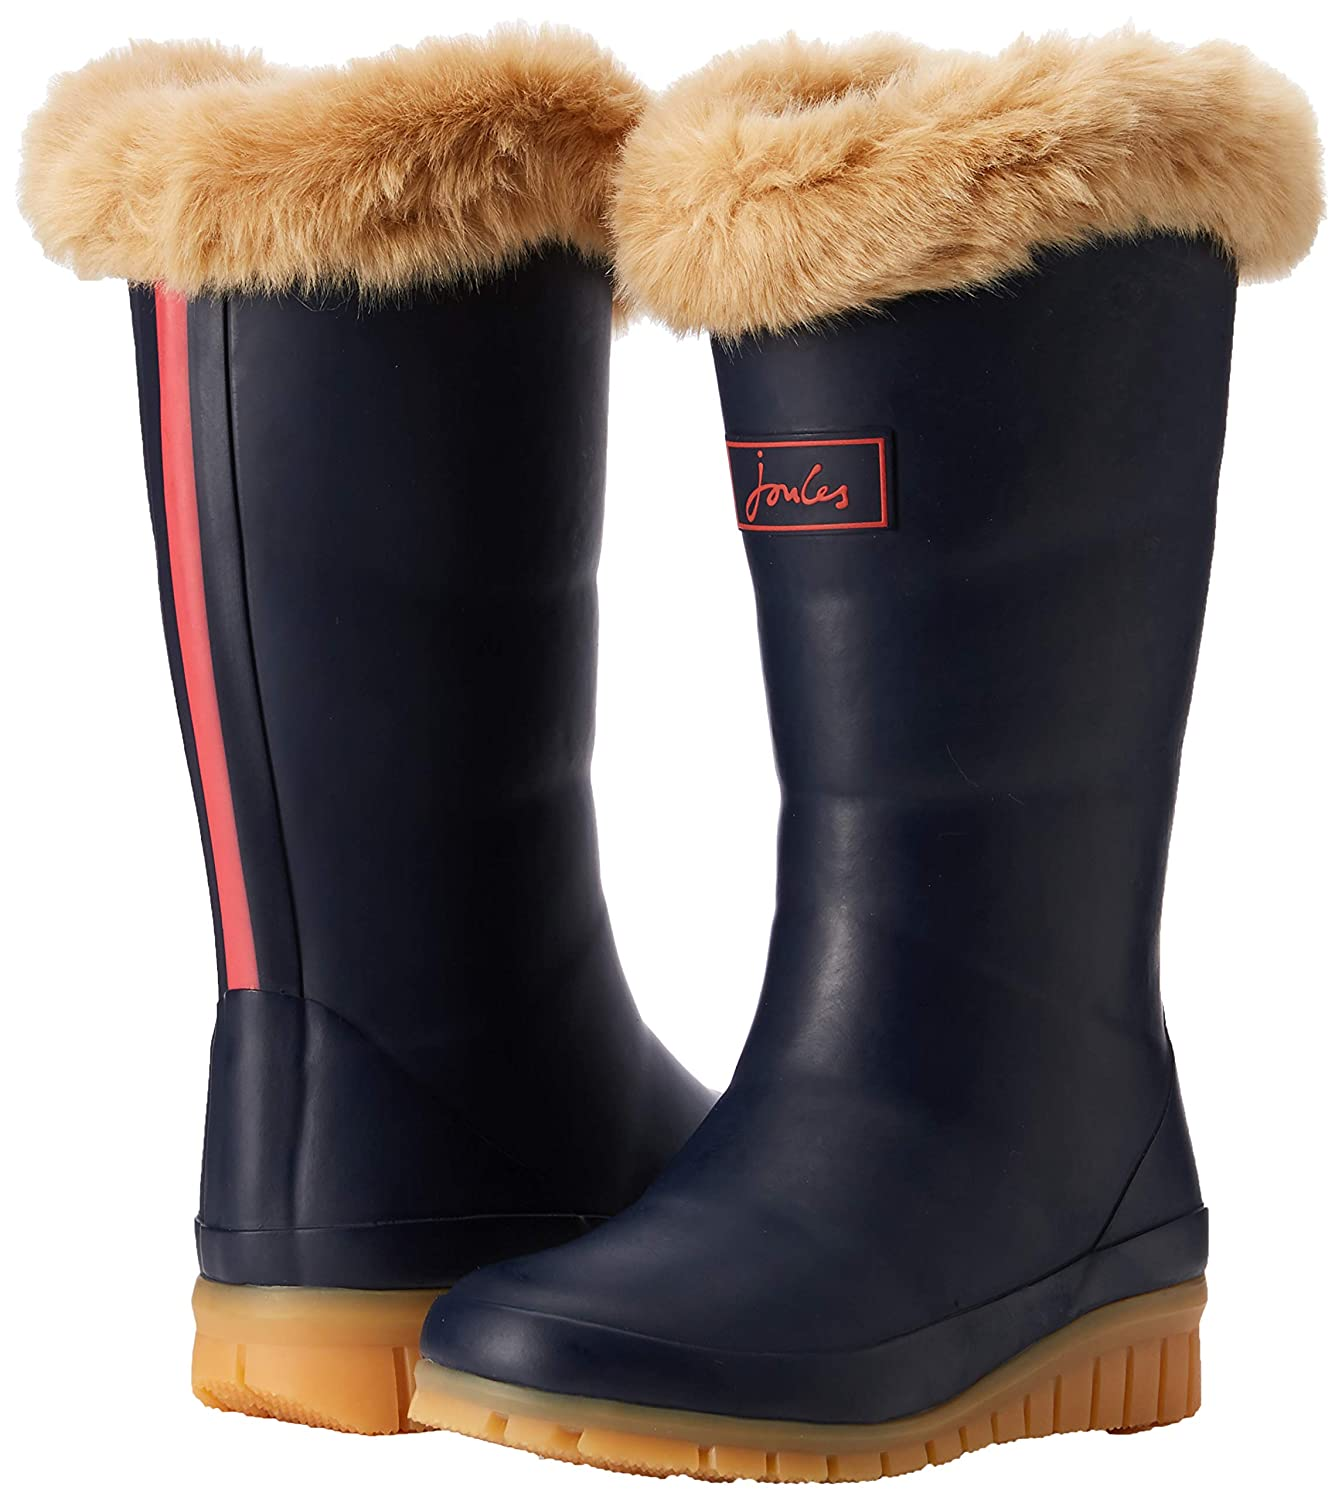 Joules Kids Womens Downtown Tall Padded Winter Welly Boot Toddler//Little Kid//Big Kid